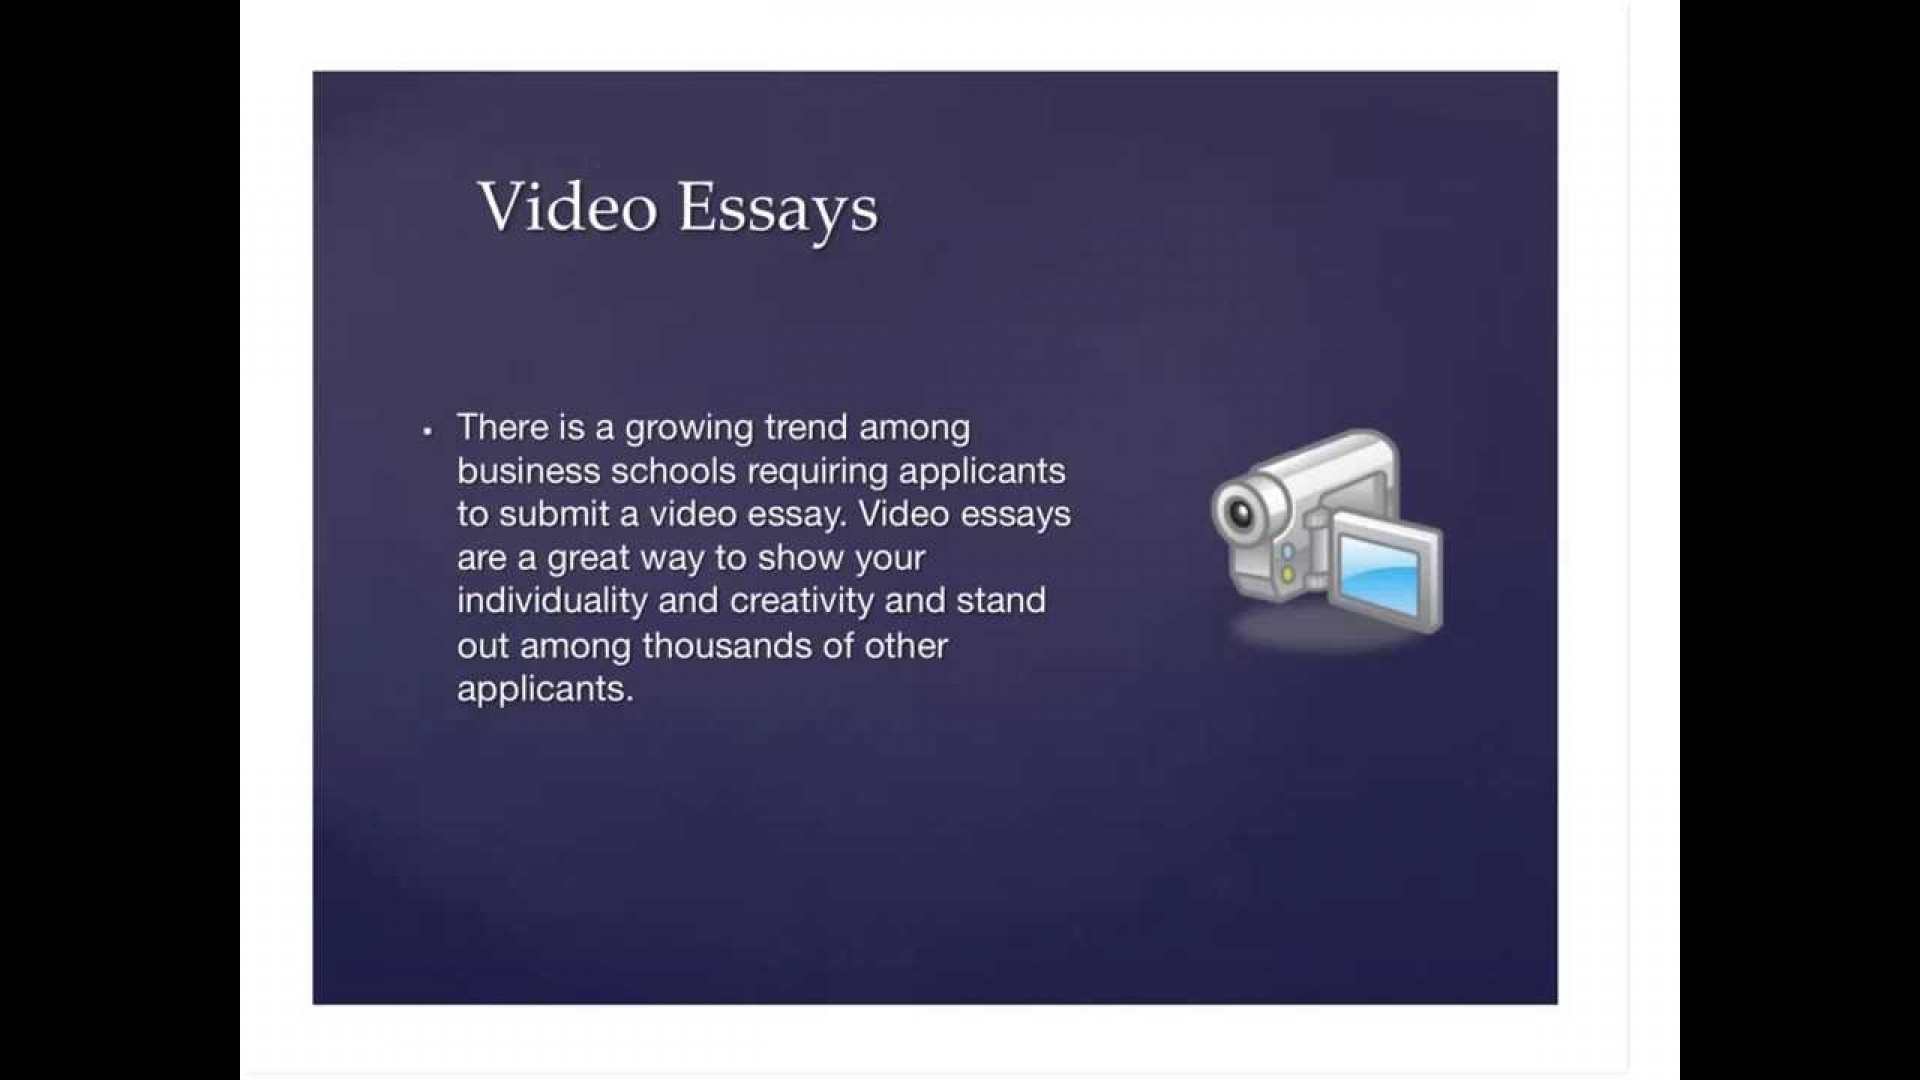 006 Essay Example Kellogg Video Wondrous Deadline Questions 2018 1920